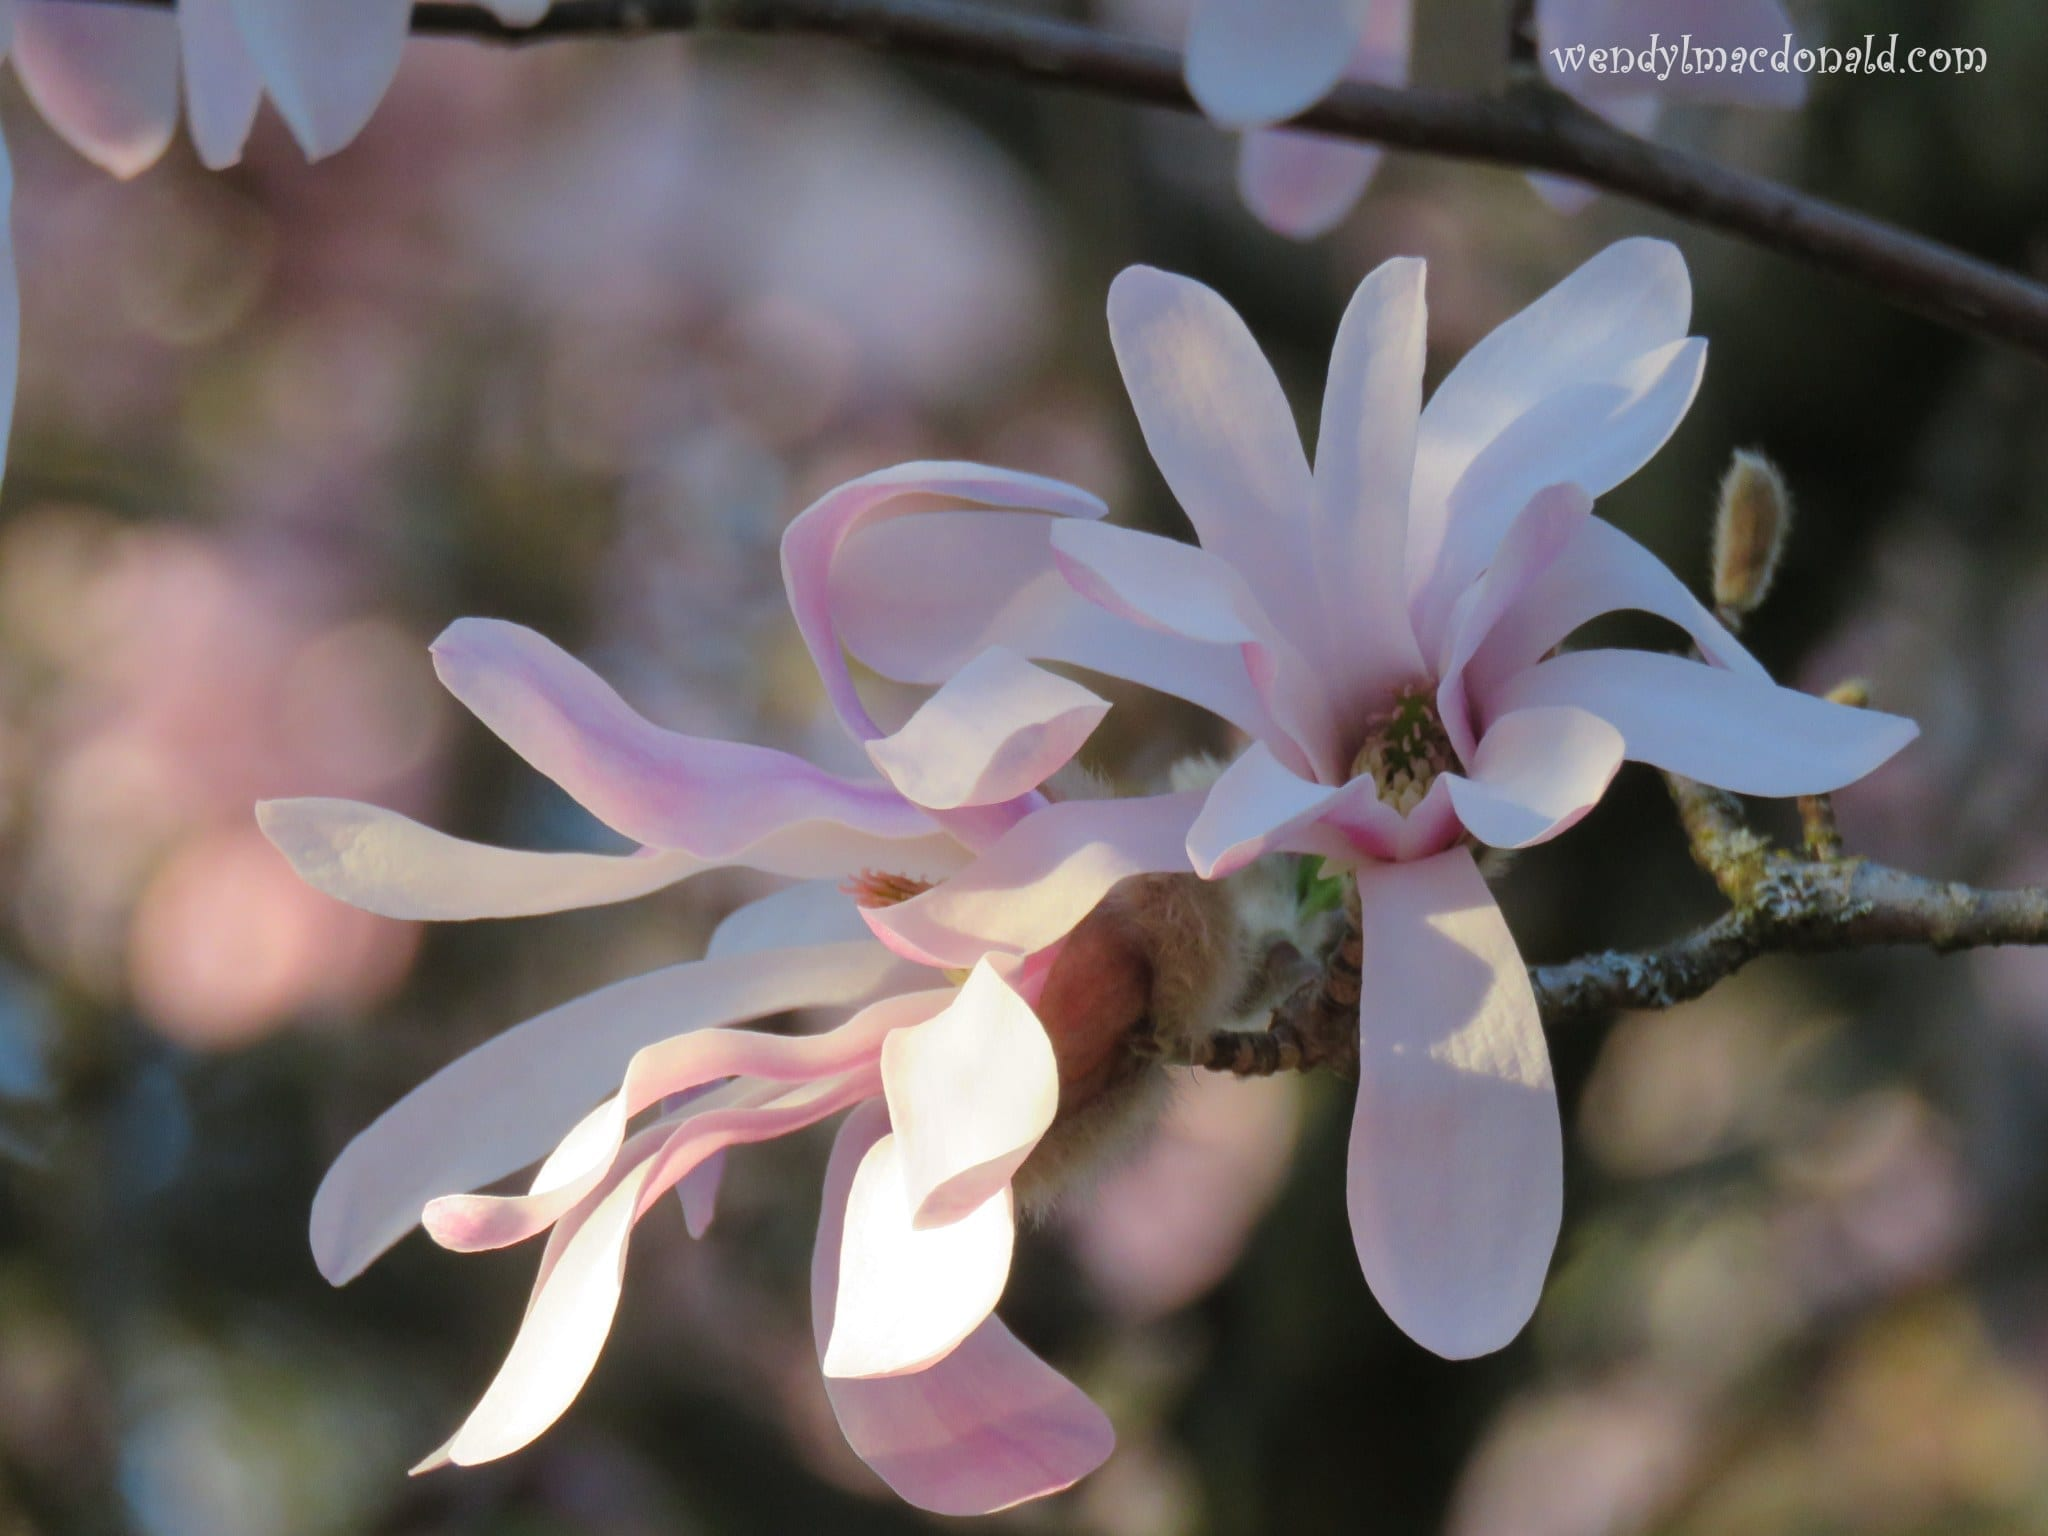 Tree Blossoms, photo credit: Wendy MacDonald